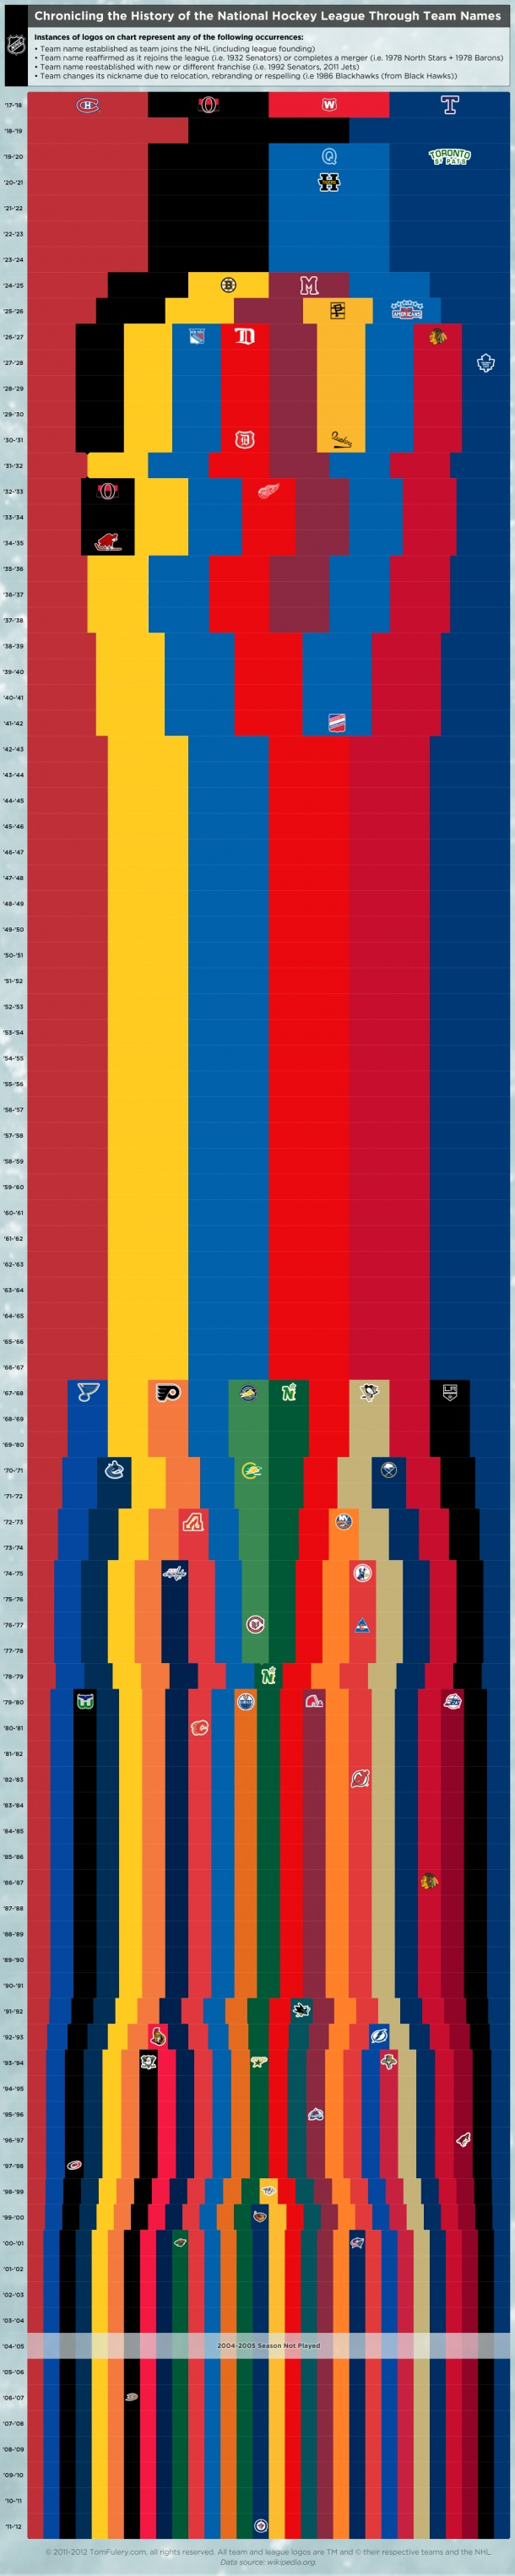 Chronicling The History Of The National Hockey League Through Team Names[INFOGRAPHIC]